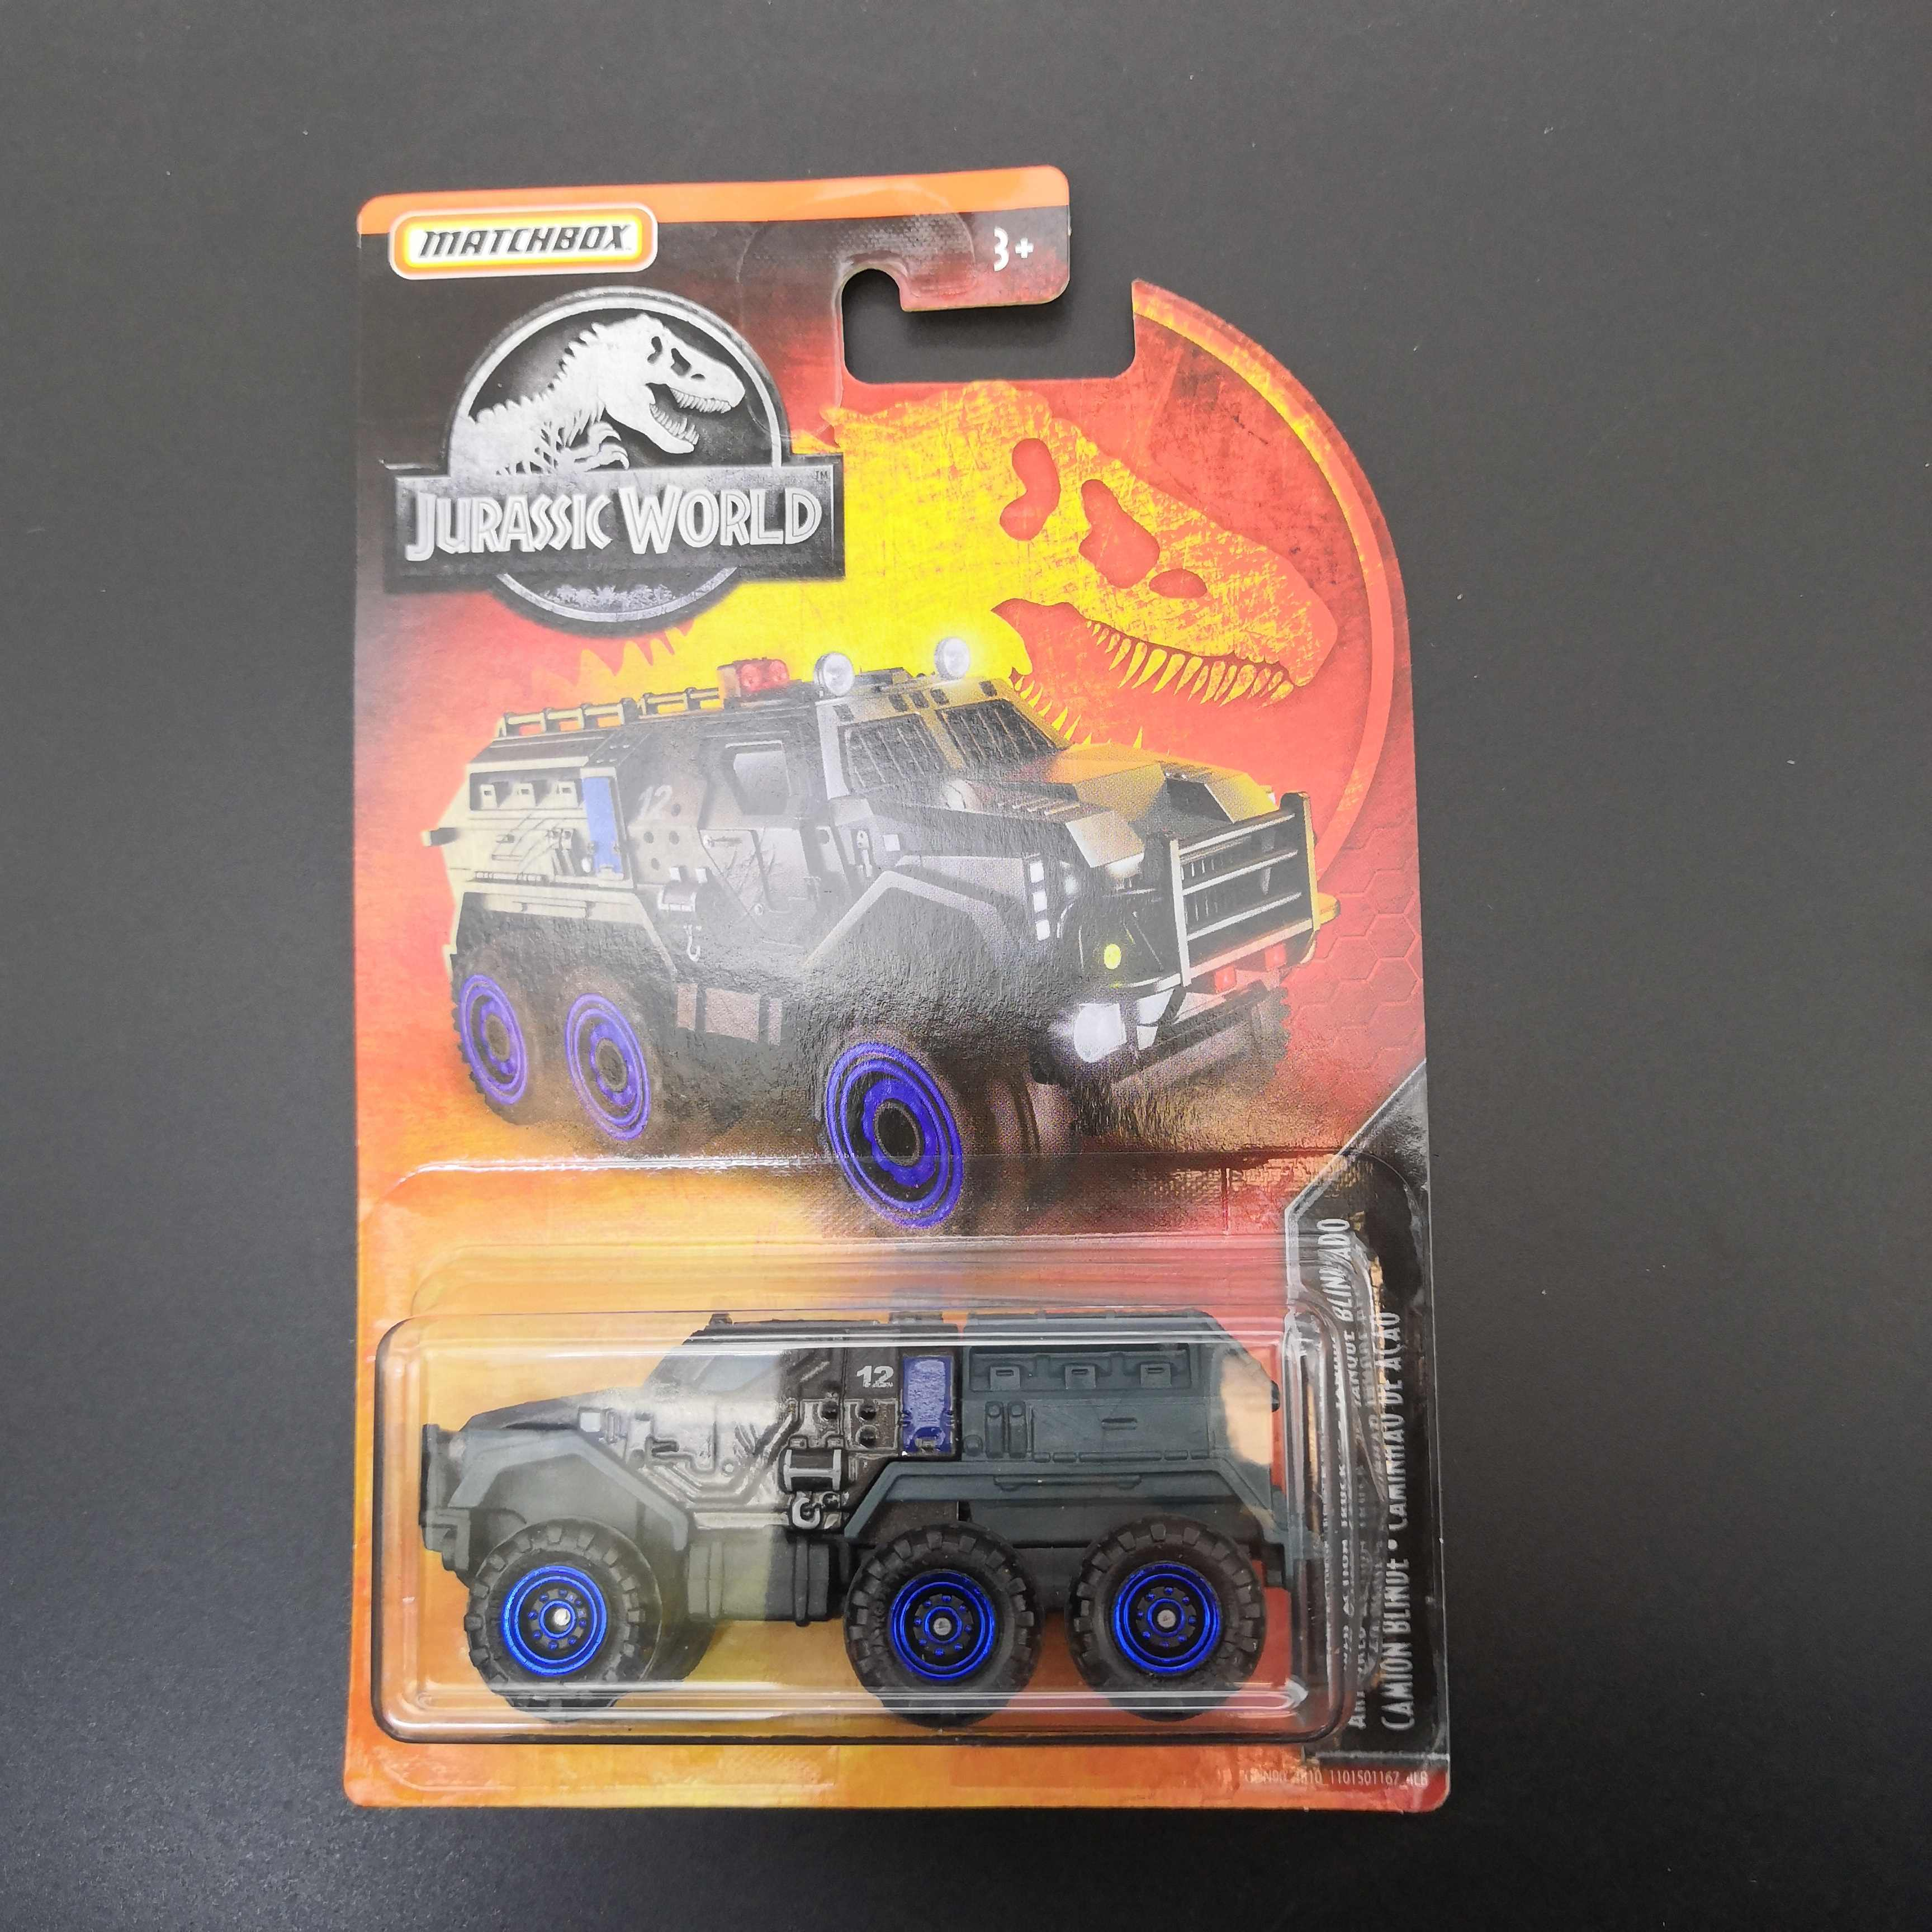 2019 Matchbox Car 1:64 Sports Car JURASSIC WORLD CAMION BLINDE  Metal Material Body Race Car Collection Alloy Car Gift